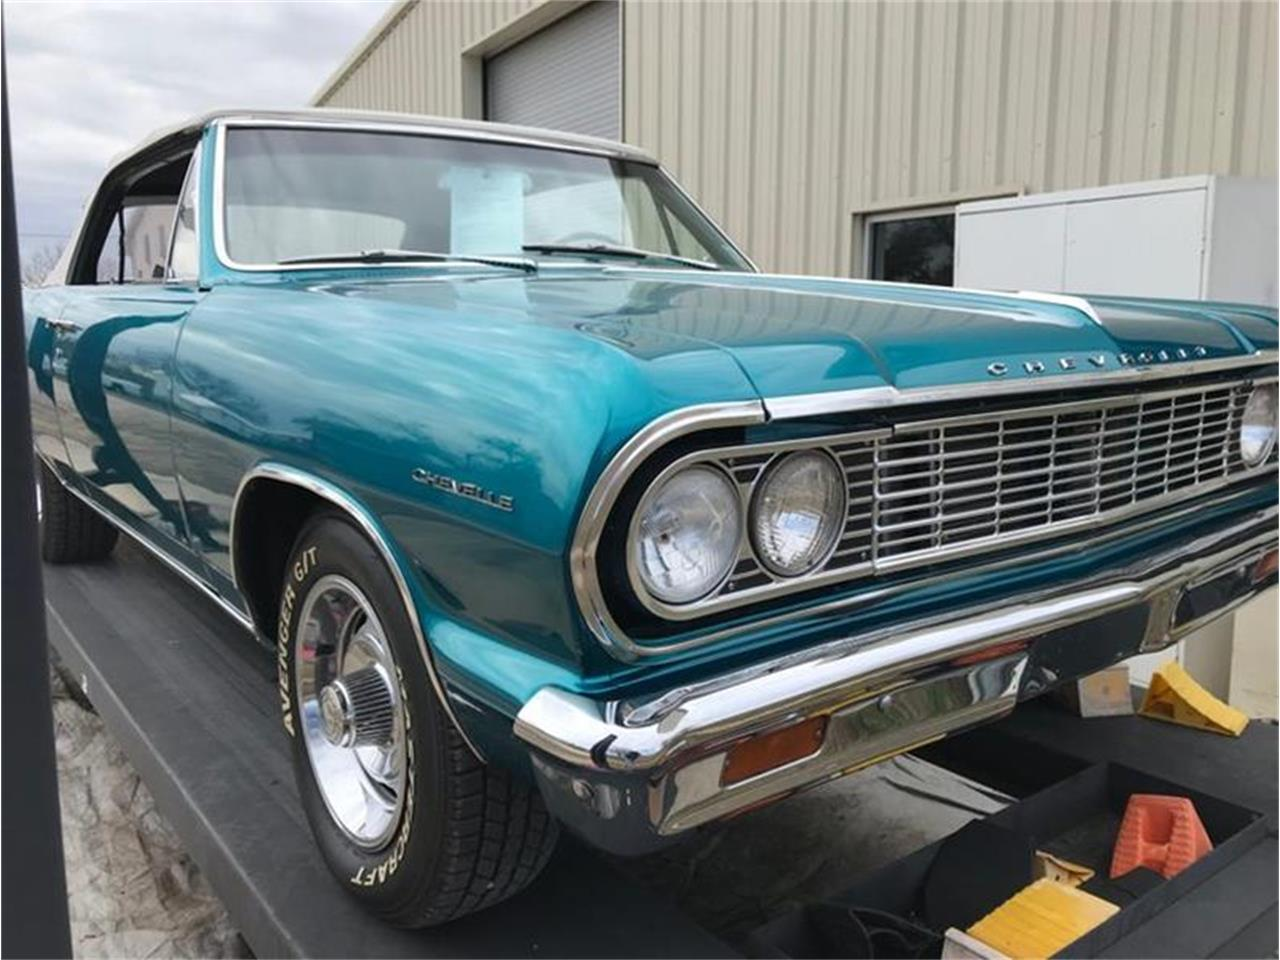 1964 Chevrolet Chevelle for sale in Fredericksburg, TX – photo 56